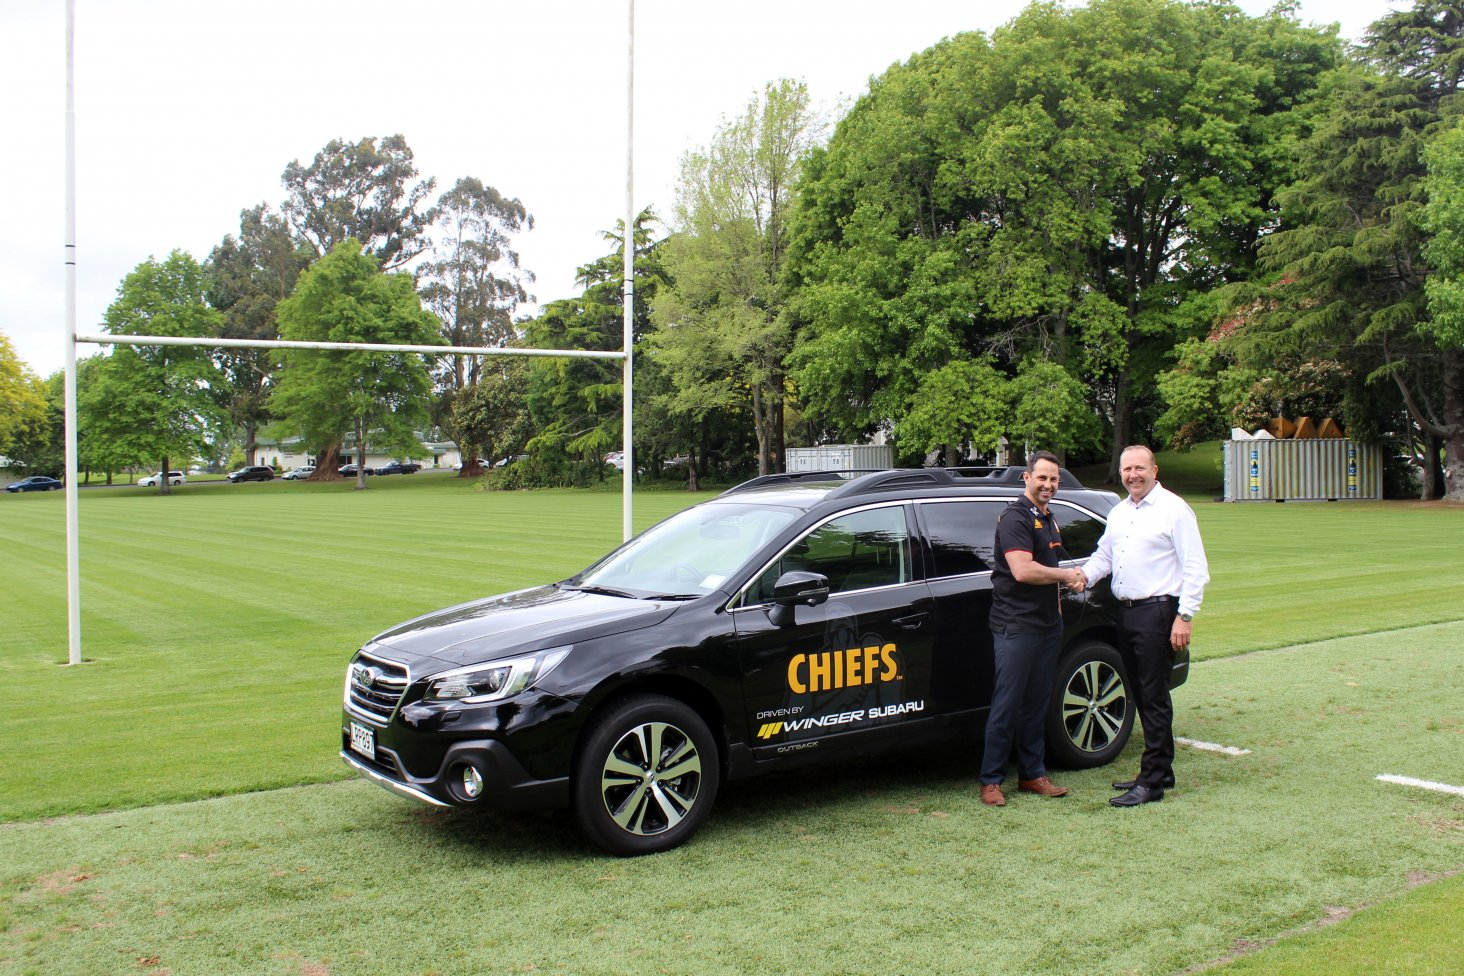 Winger Subaru's Hamilton dealership has become the official vehicle supplier for the Chiefs Rugby Club.